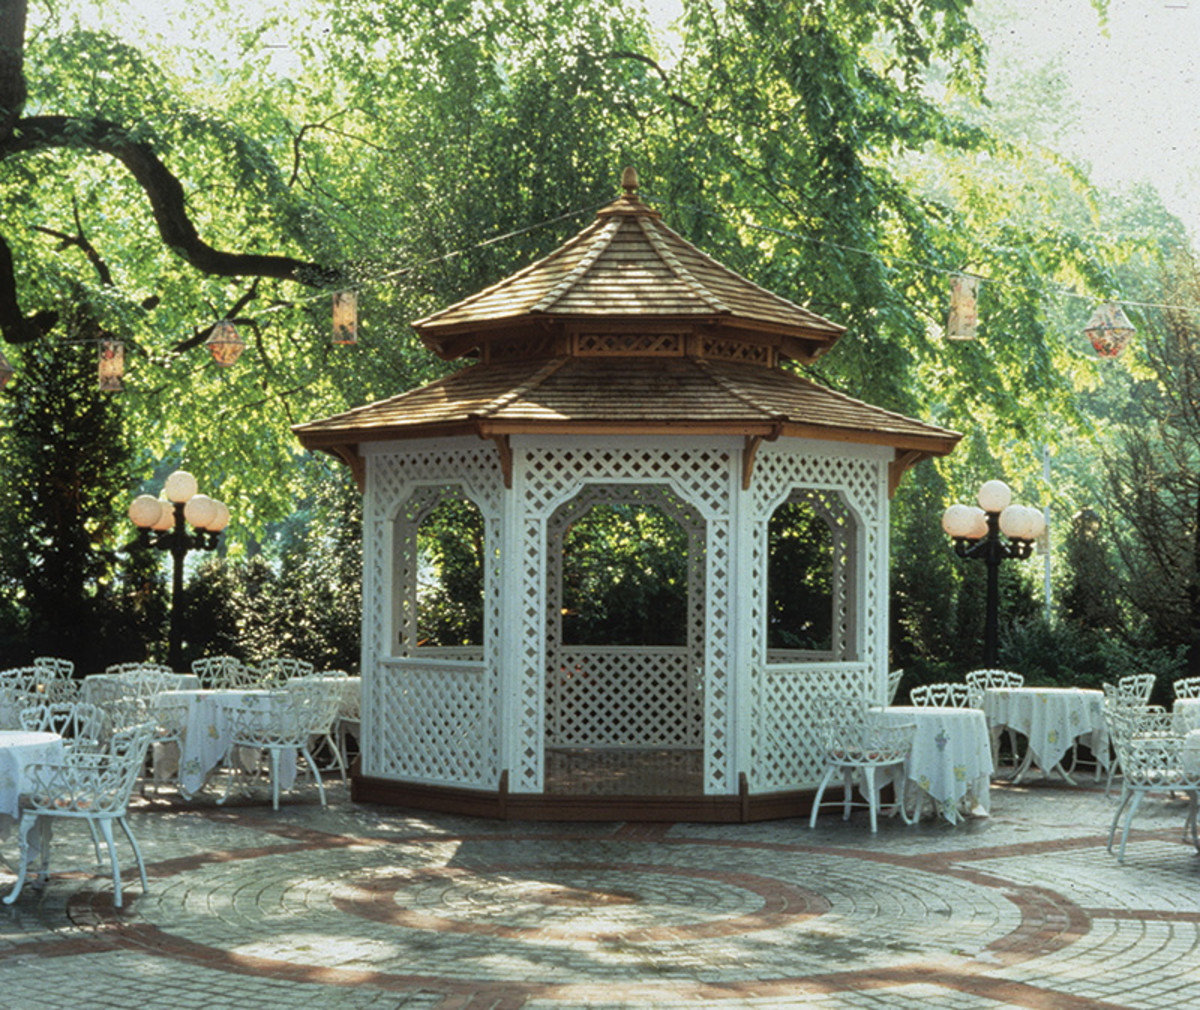 This 13-ft. Victorian-style pagoda from Dalton Pavilions sits in the garden at the Tavern on the Green Restaurant in New York City. Photo: courtesy of Dalton Pavilions